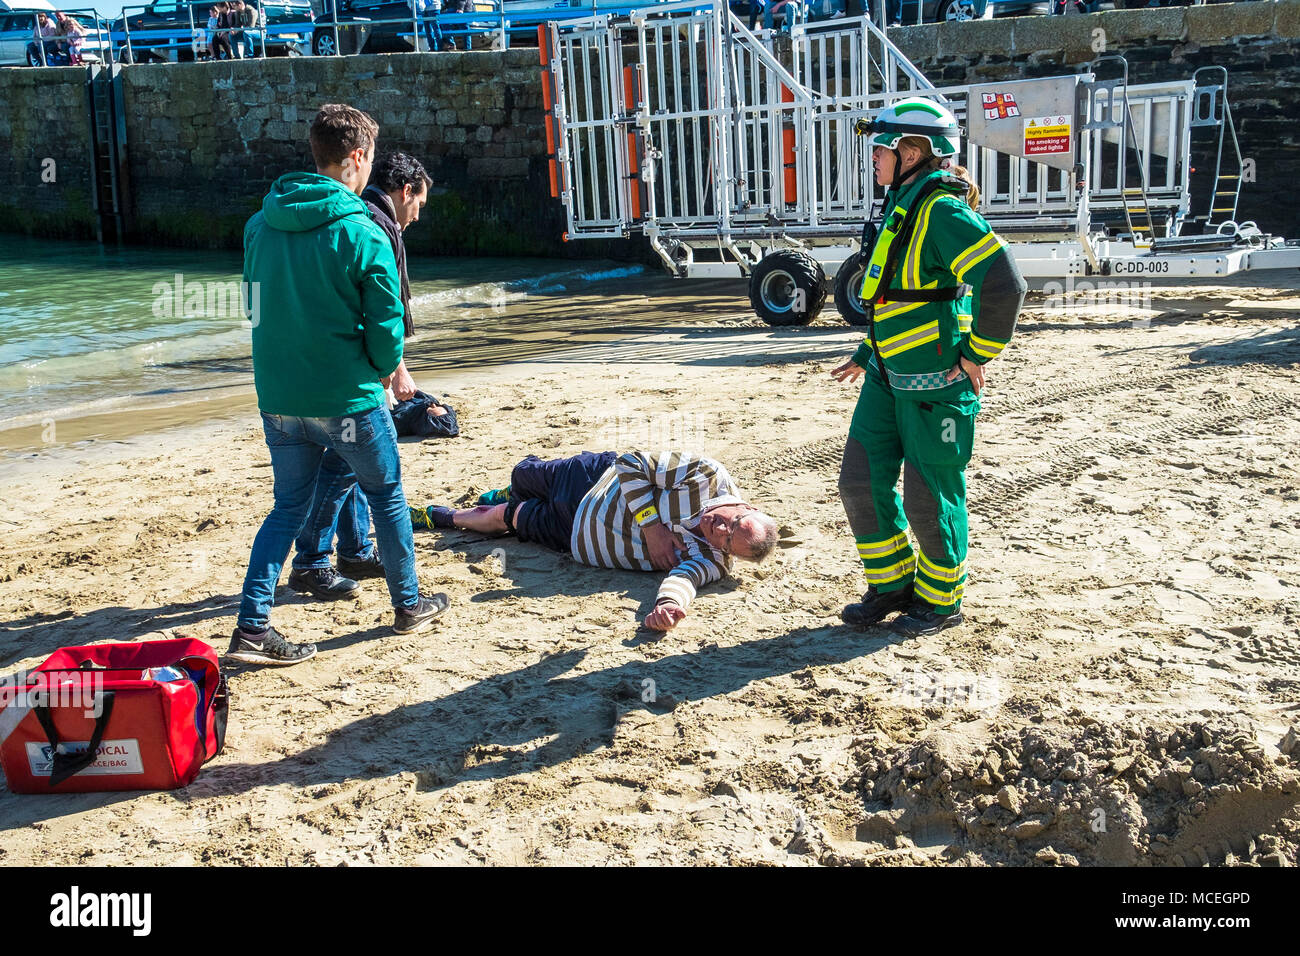 Volunteers and health professionals participating in a GMICE (Good Medicine in Challenging Environments) major incident exercise in Newquay Harbour in - Stock Image